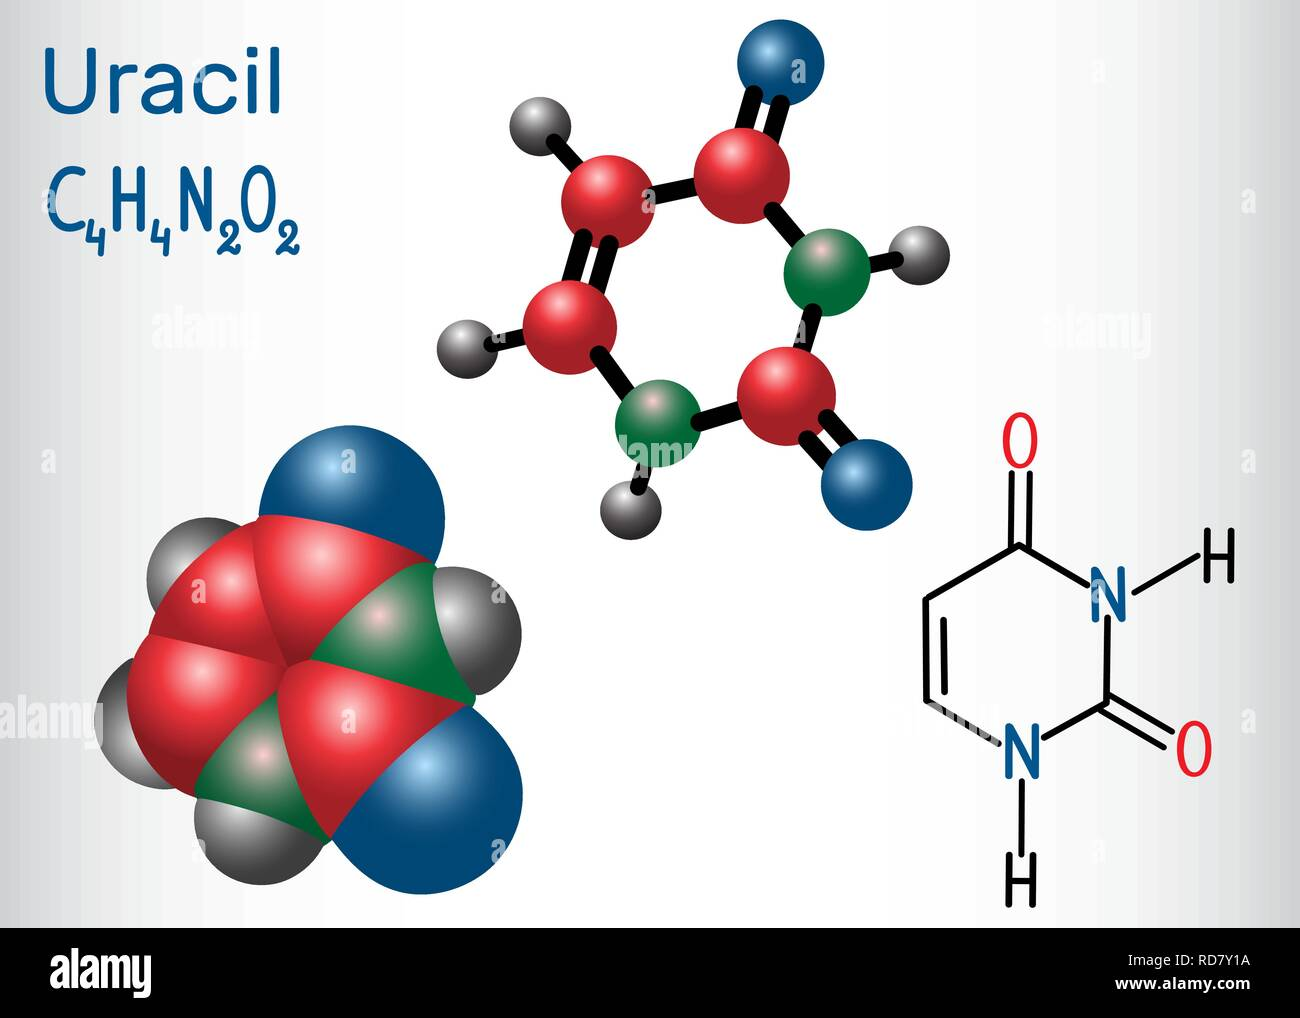 Uracil  (U) - pyrimidine  nucleobase in the nucleic acid of RNA. Structural chemical formula and molecule model. Vector illustration - Stock Image